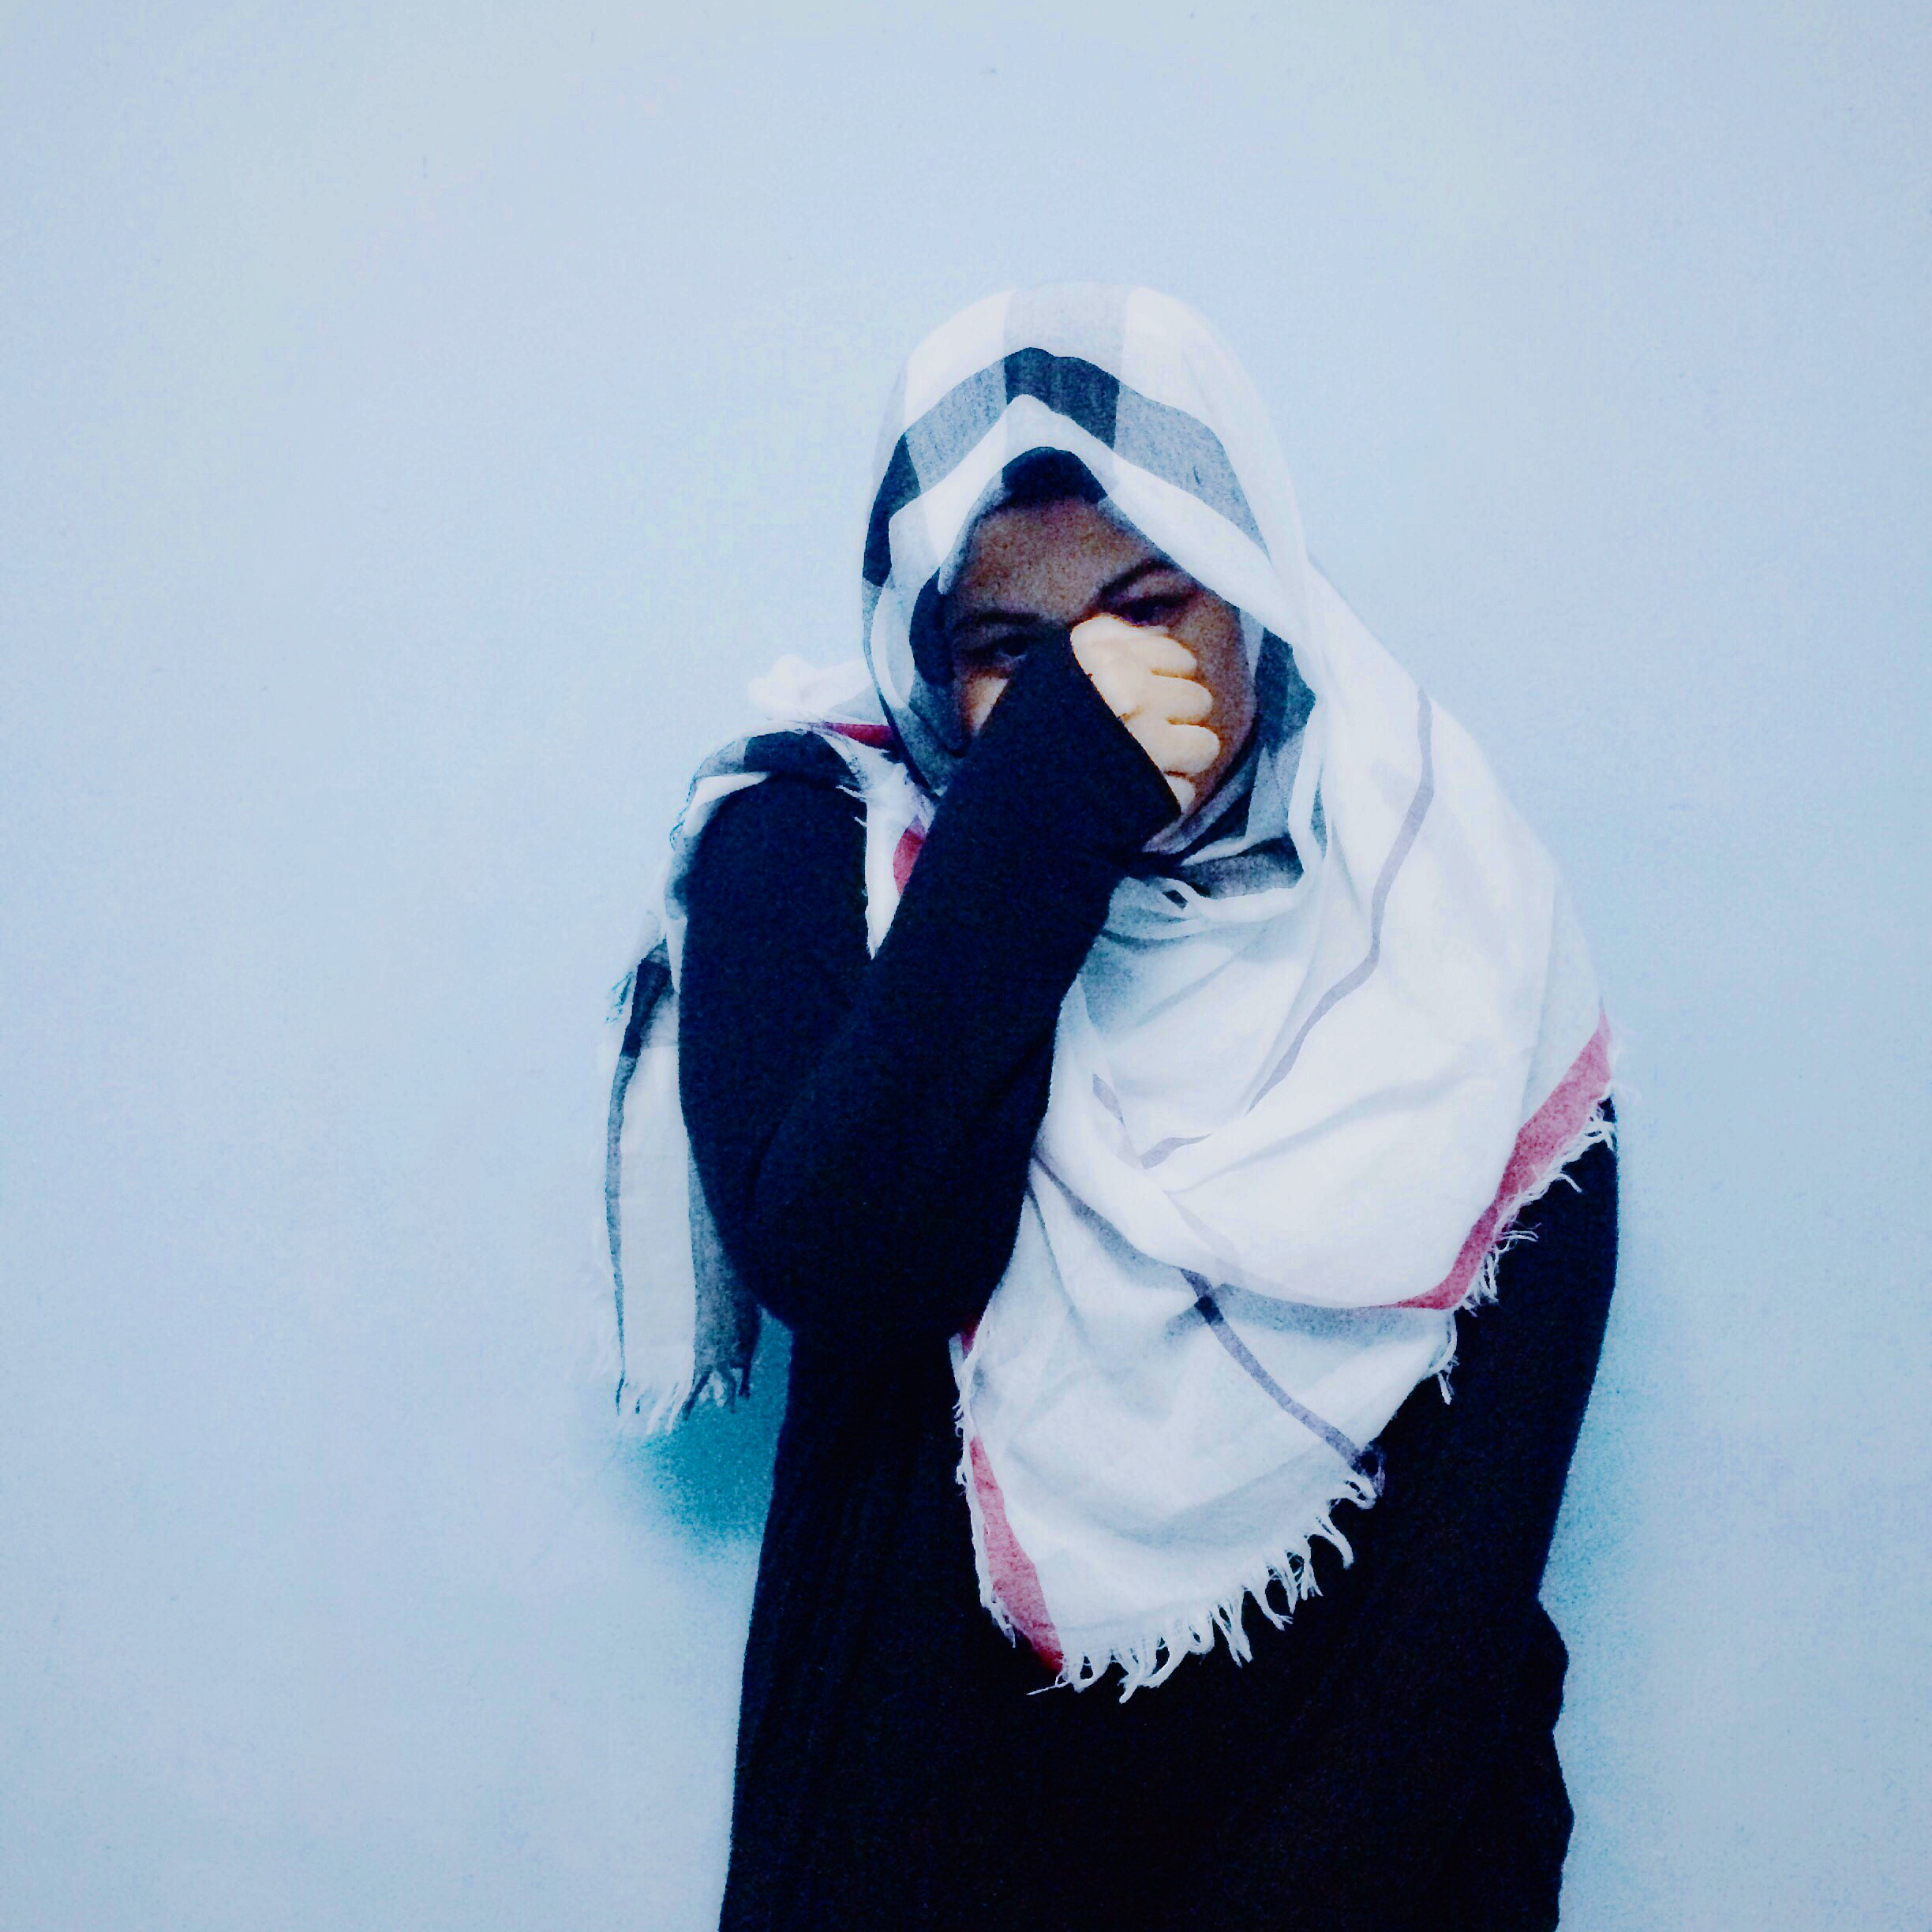 Ami jim 25 years old fashion grad struggling to be a better muslimah from kuala lumpurmalaysia